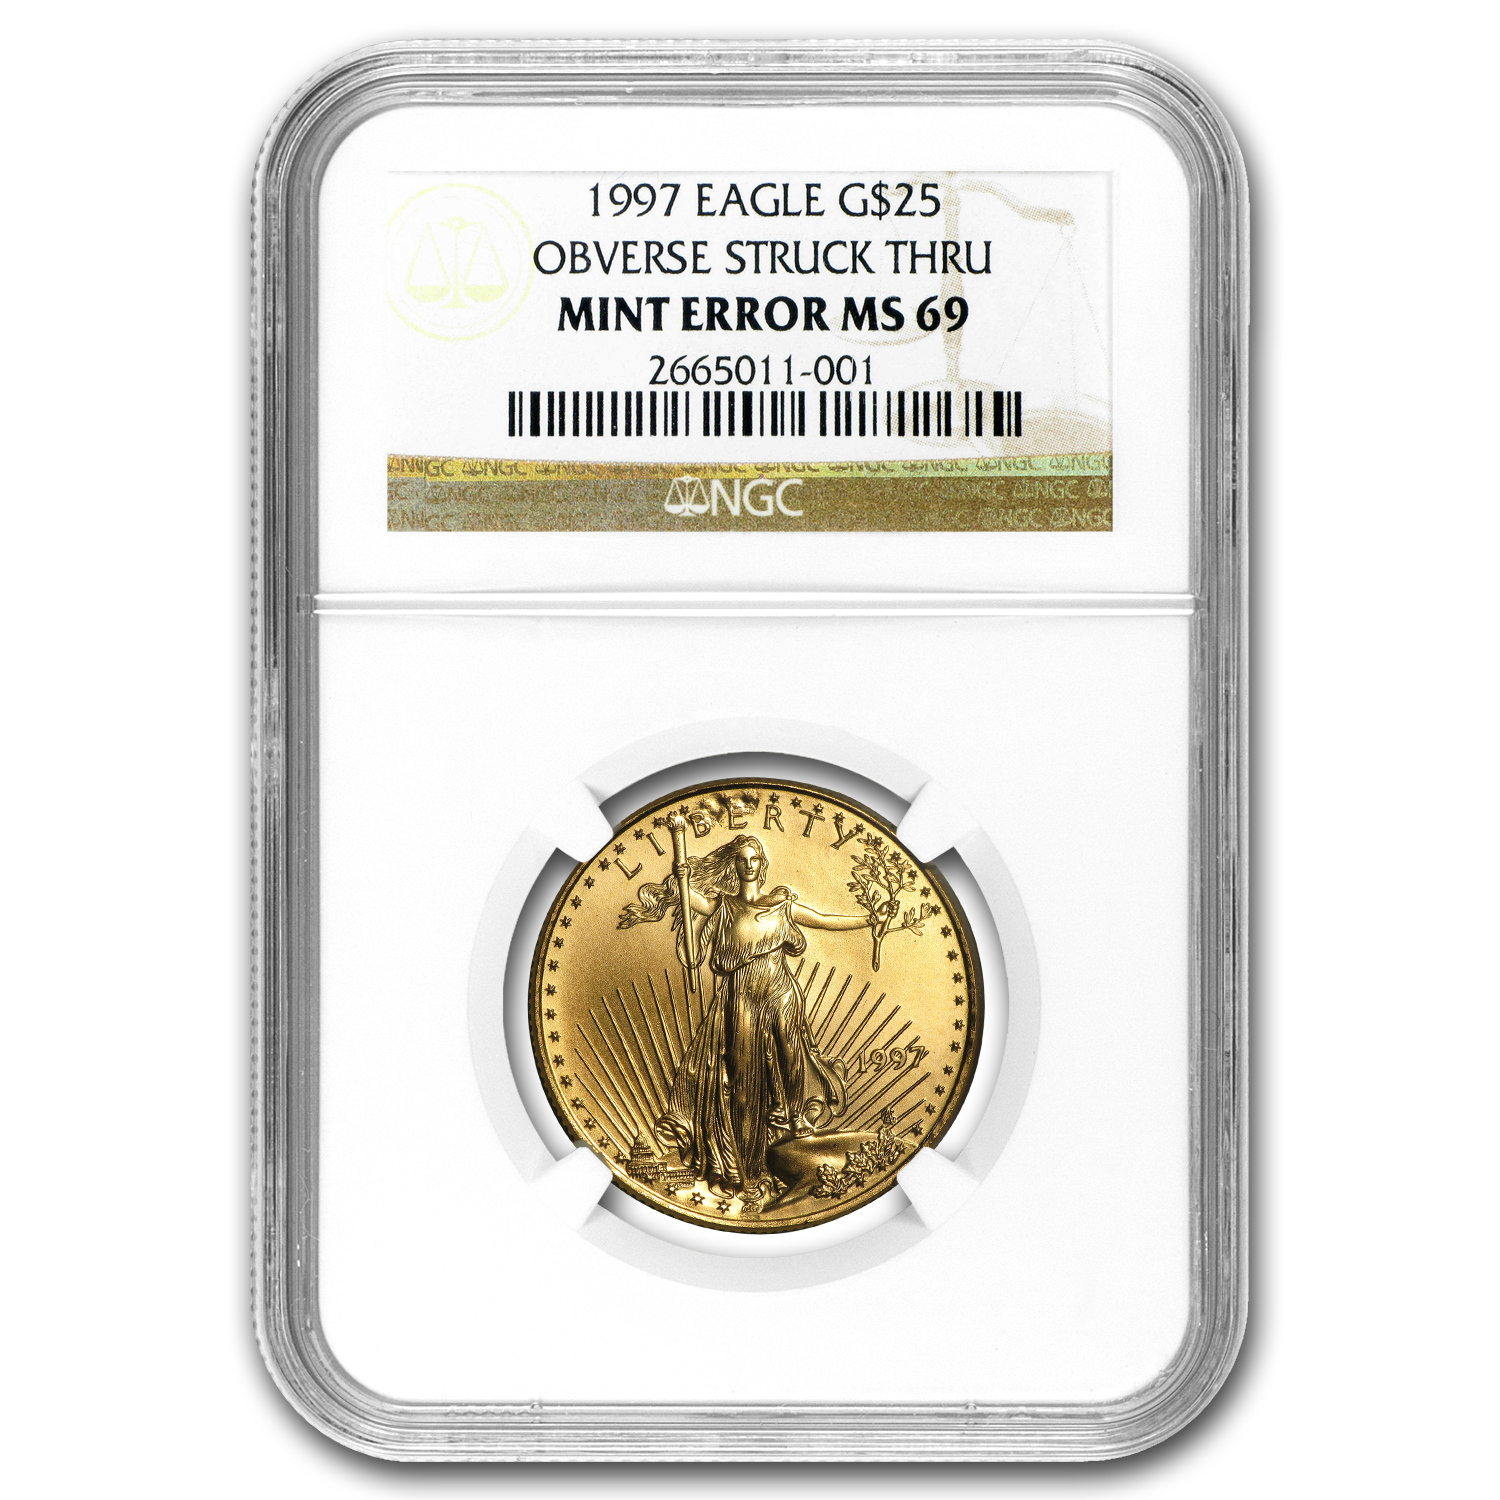 1997 1/2 oz Gold American Eagle MS-69 NGC (Obv Mint Error)